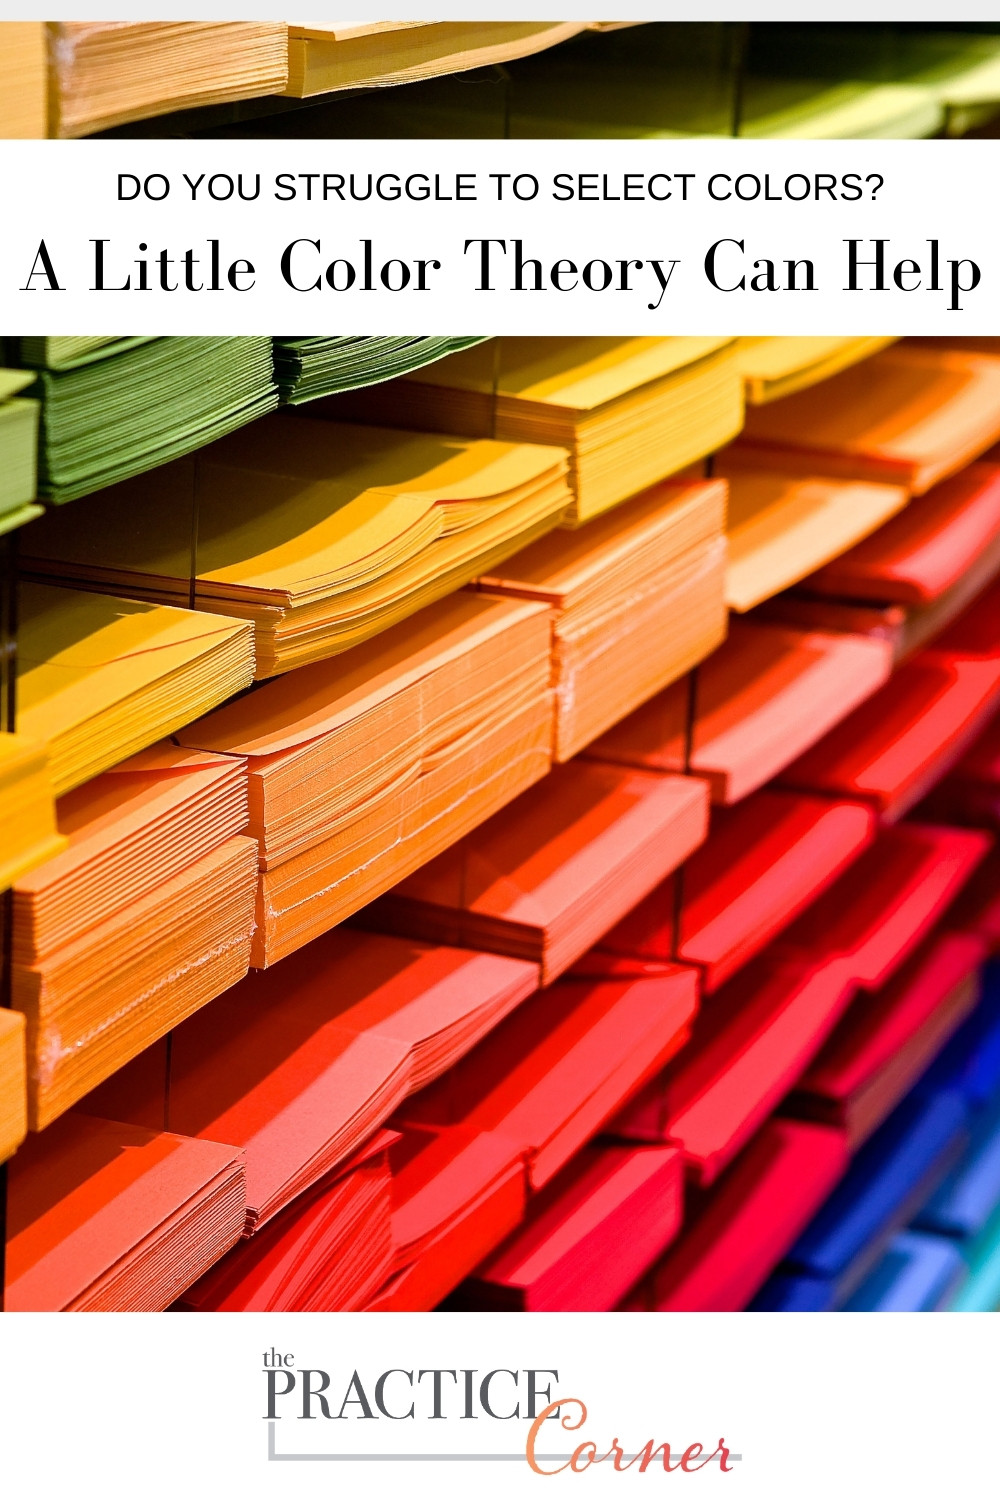 Improve your coloring results by learning a little color theory. | The Practice Corner | #colortheory #coloredpencilpractice #copicmarkerpractice